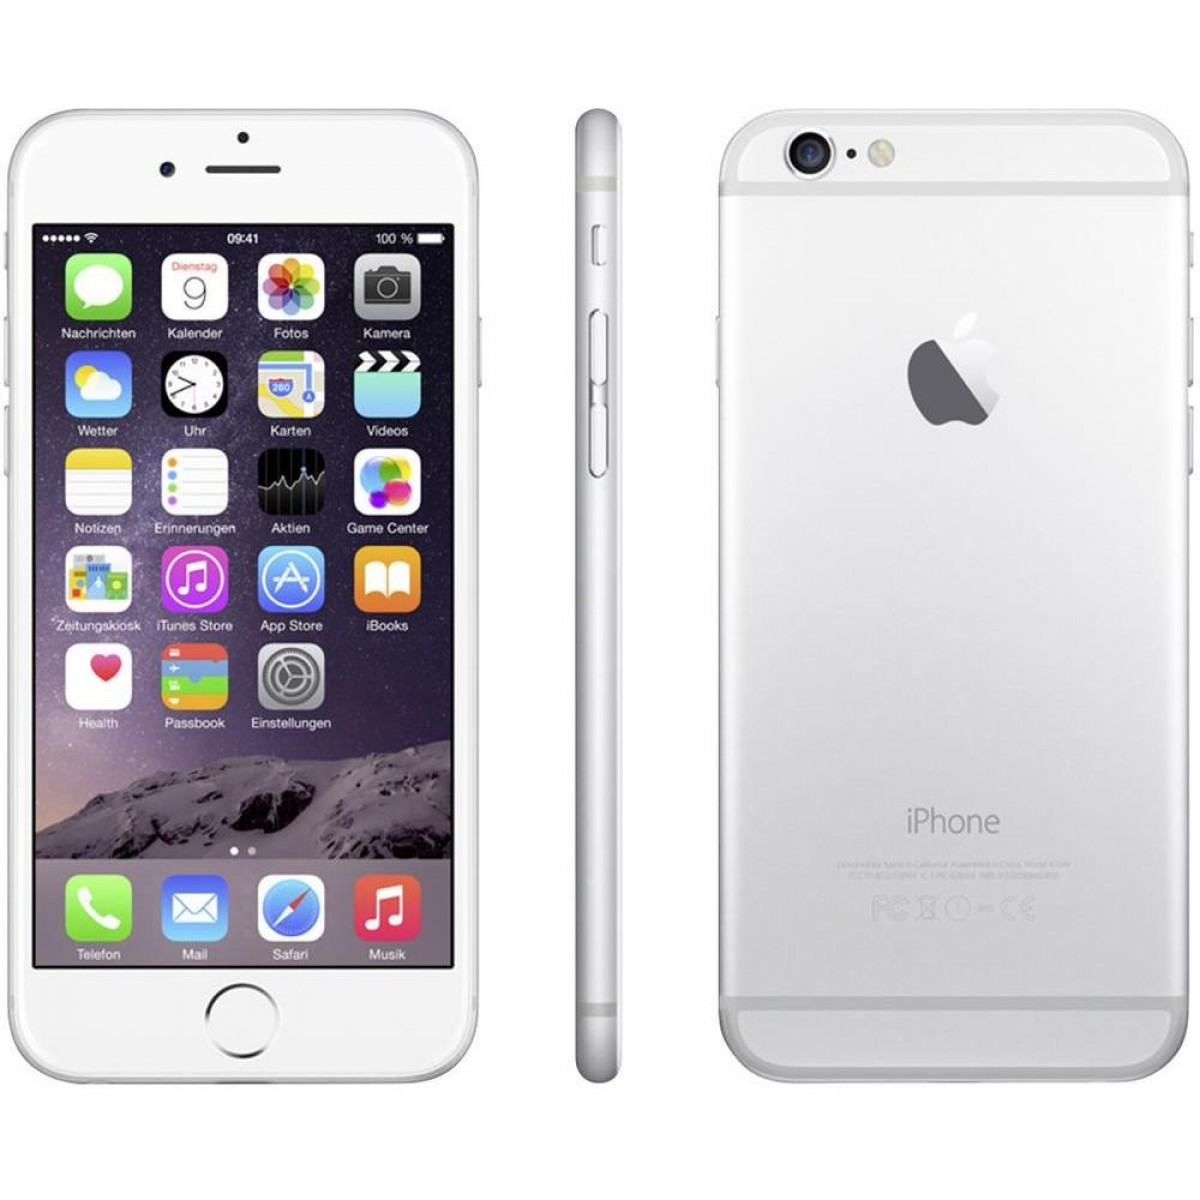 cheap t mobile iphone apple iphone 6 32gb smartphone t mobile silver 13802